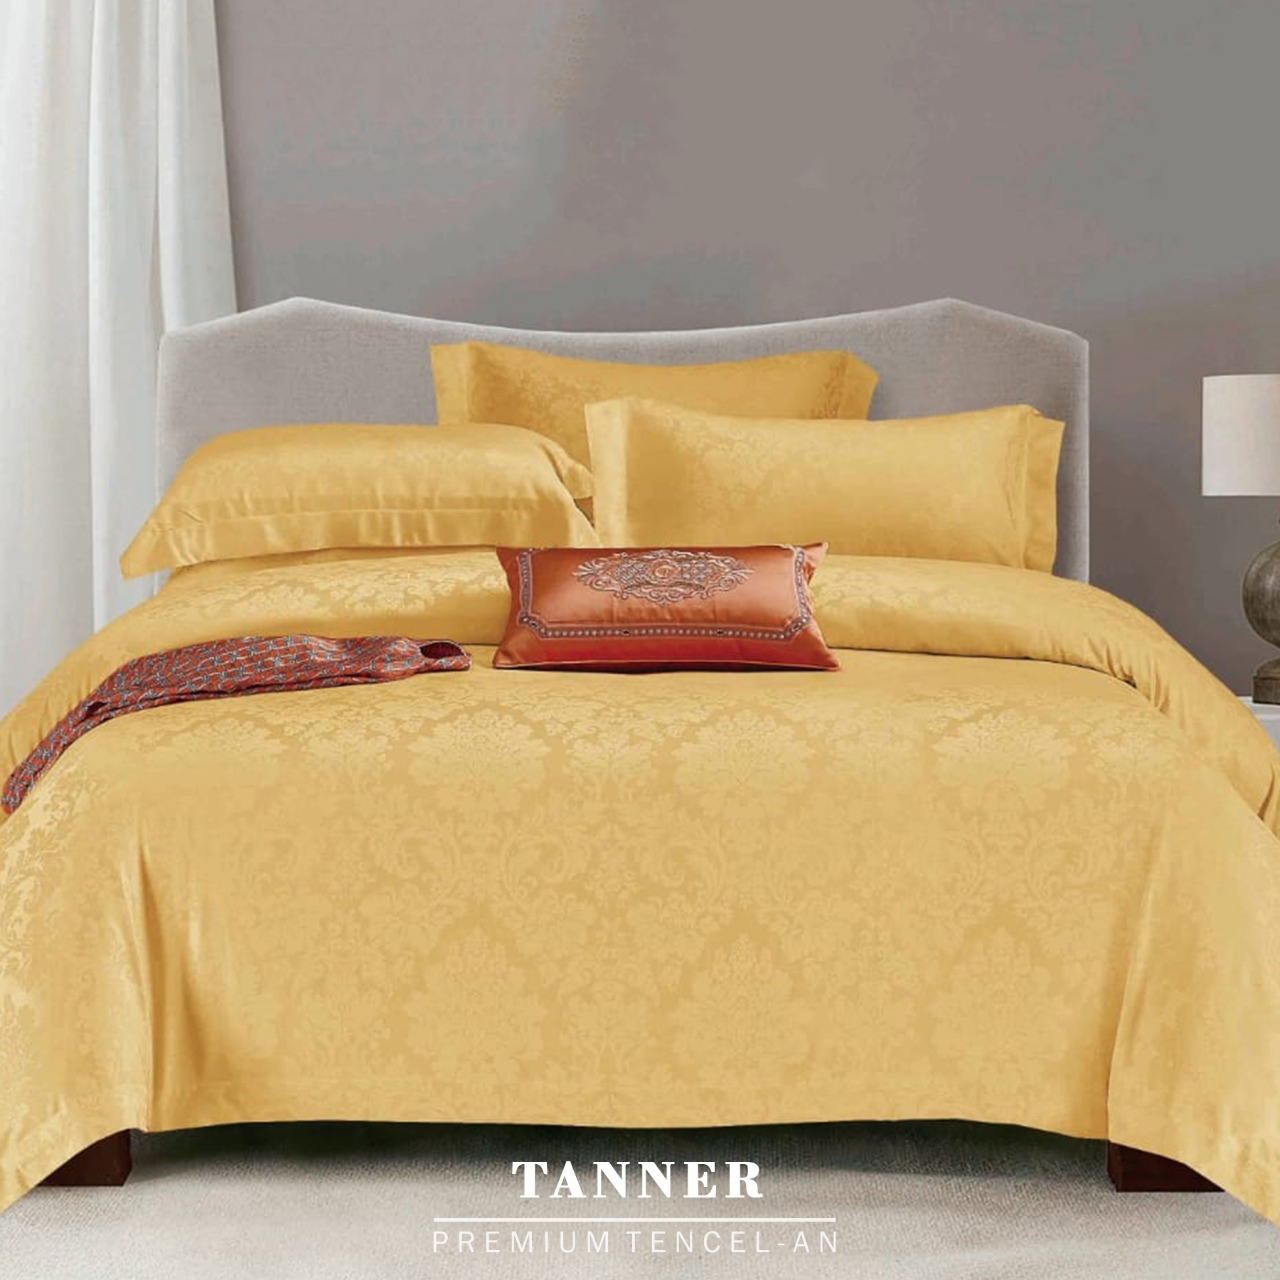 Tanner - Premium TENCEL™ Bedding Set